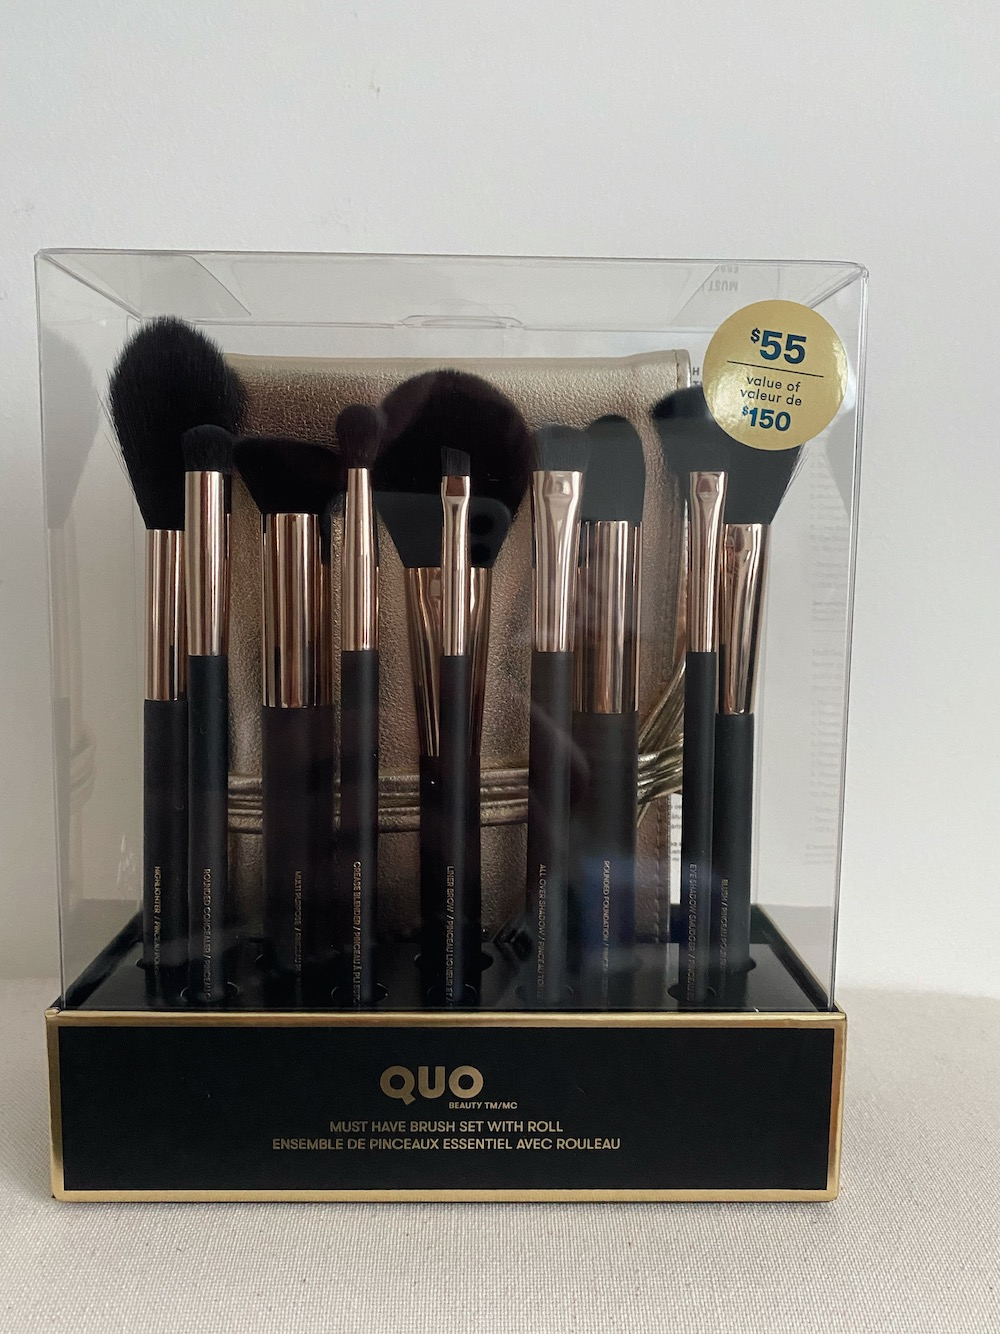 Quo Beauty Must Have Brush Set